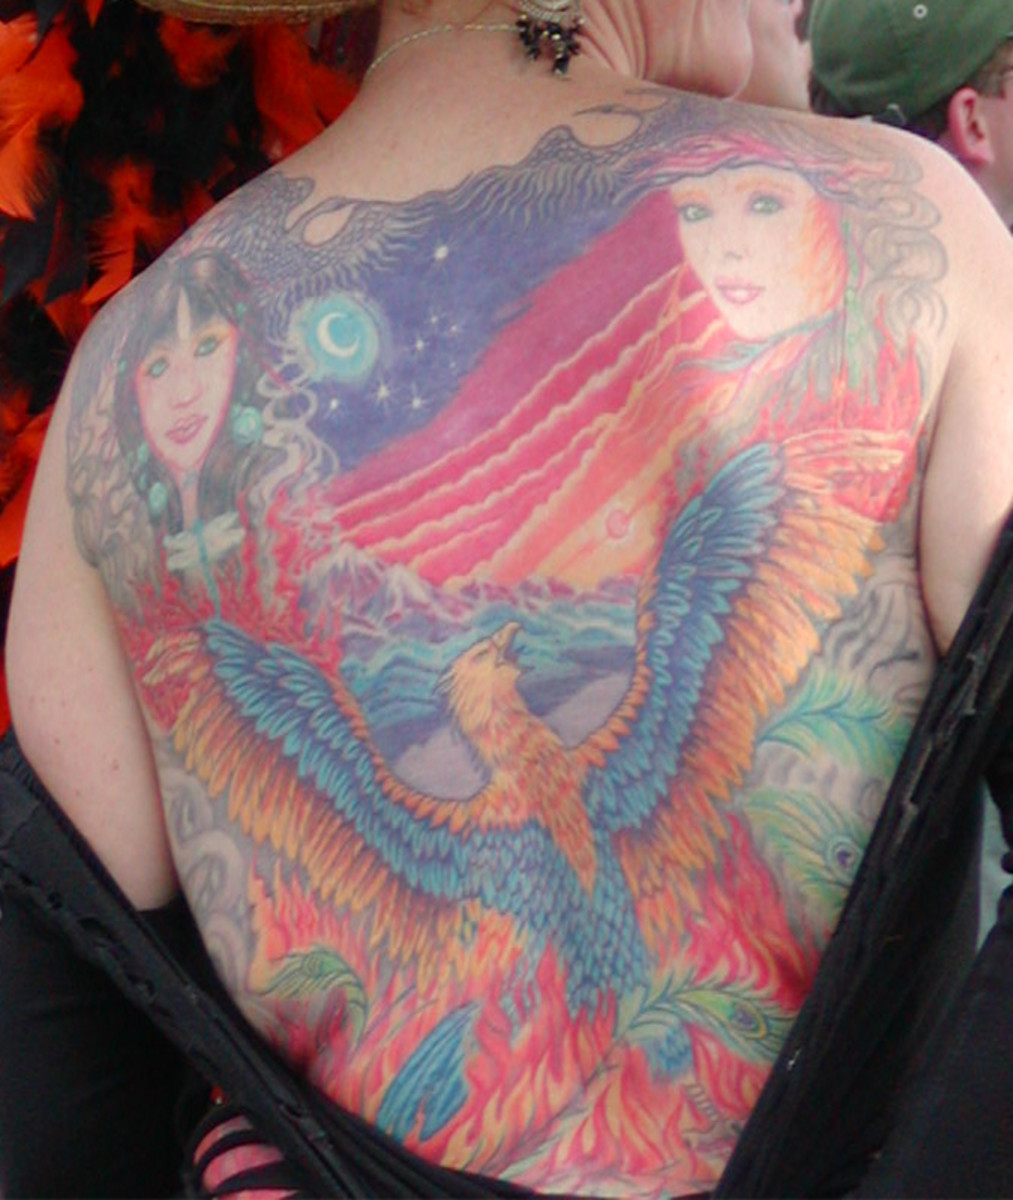 Lady back tattoo, public domain